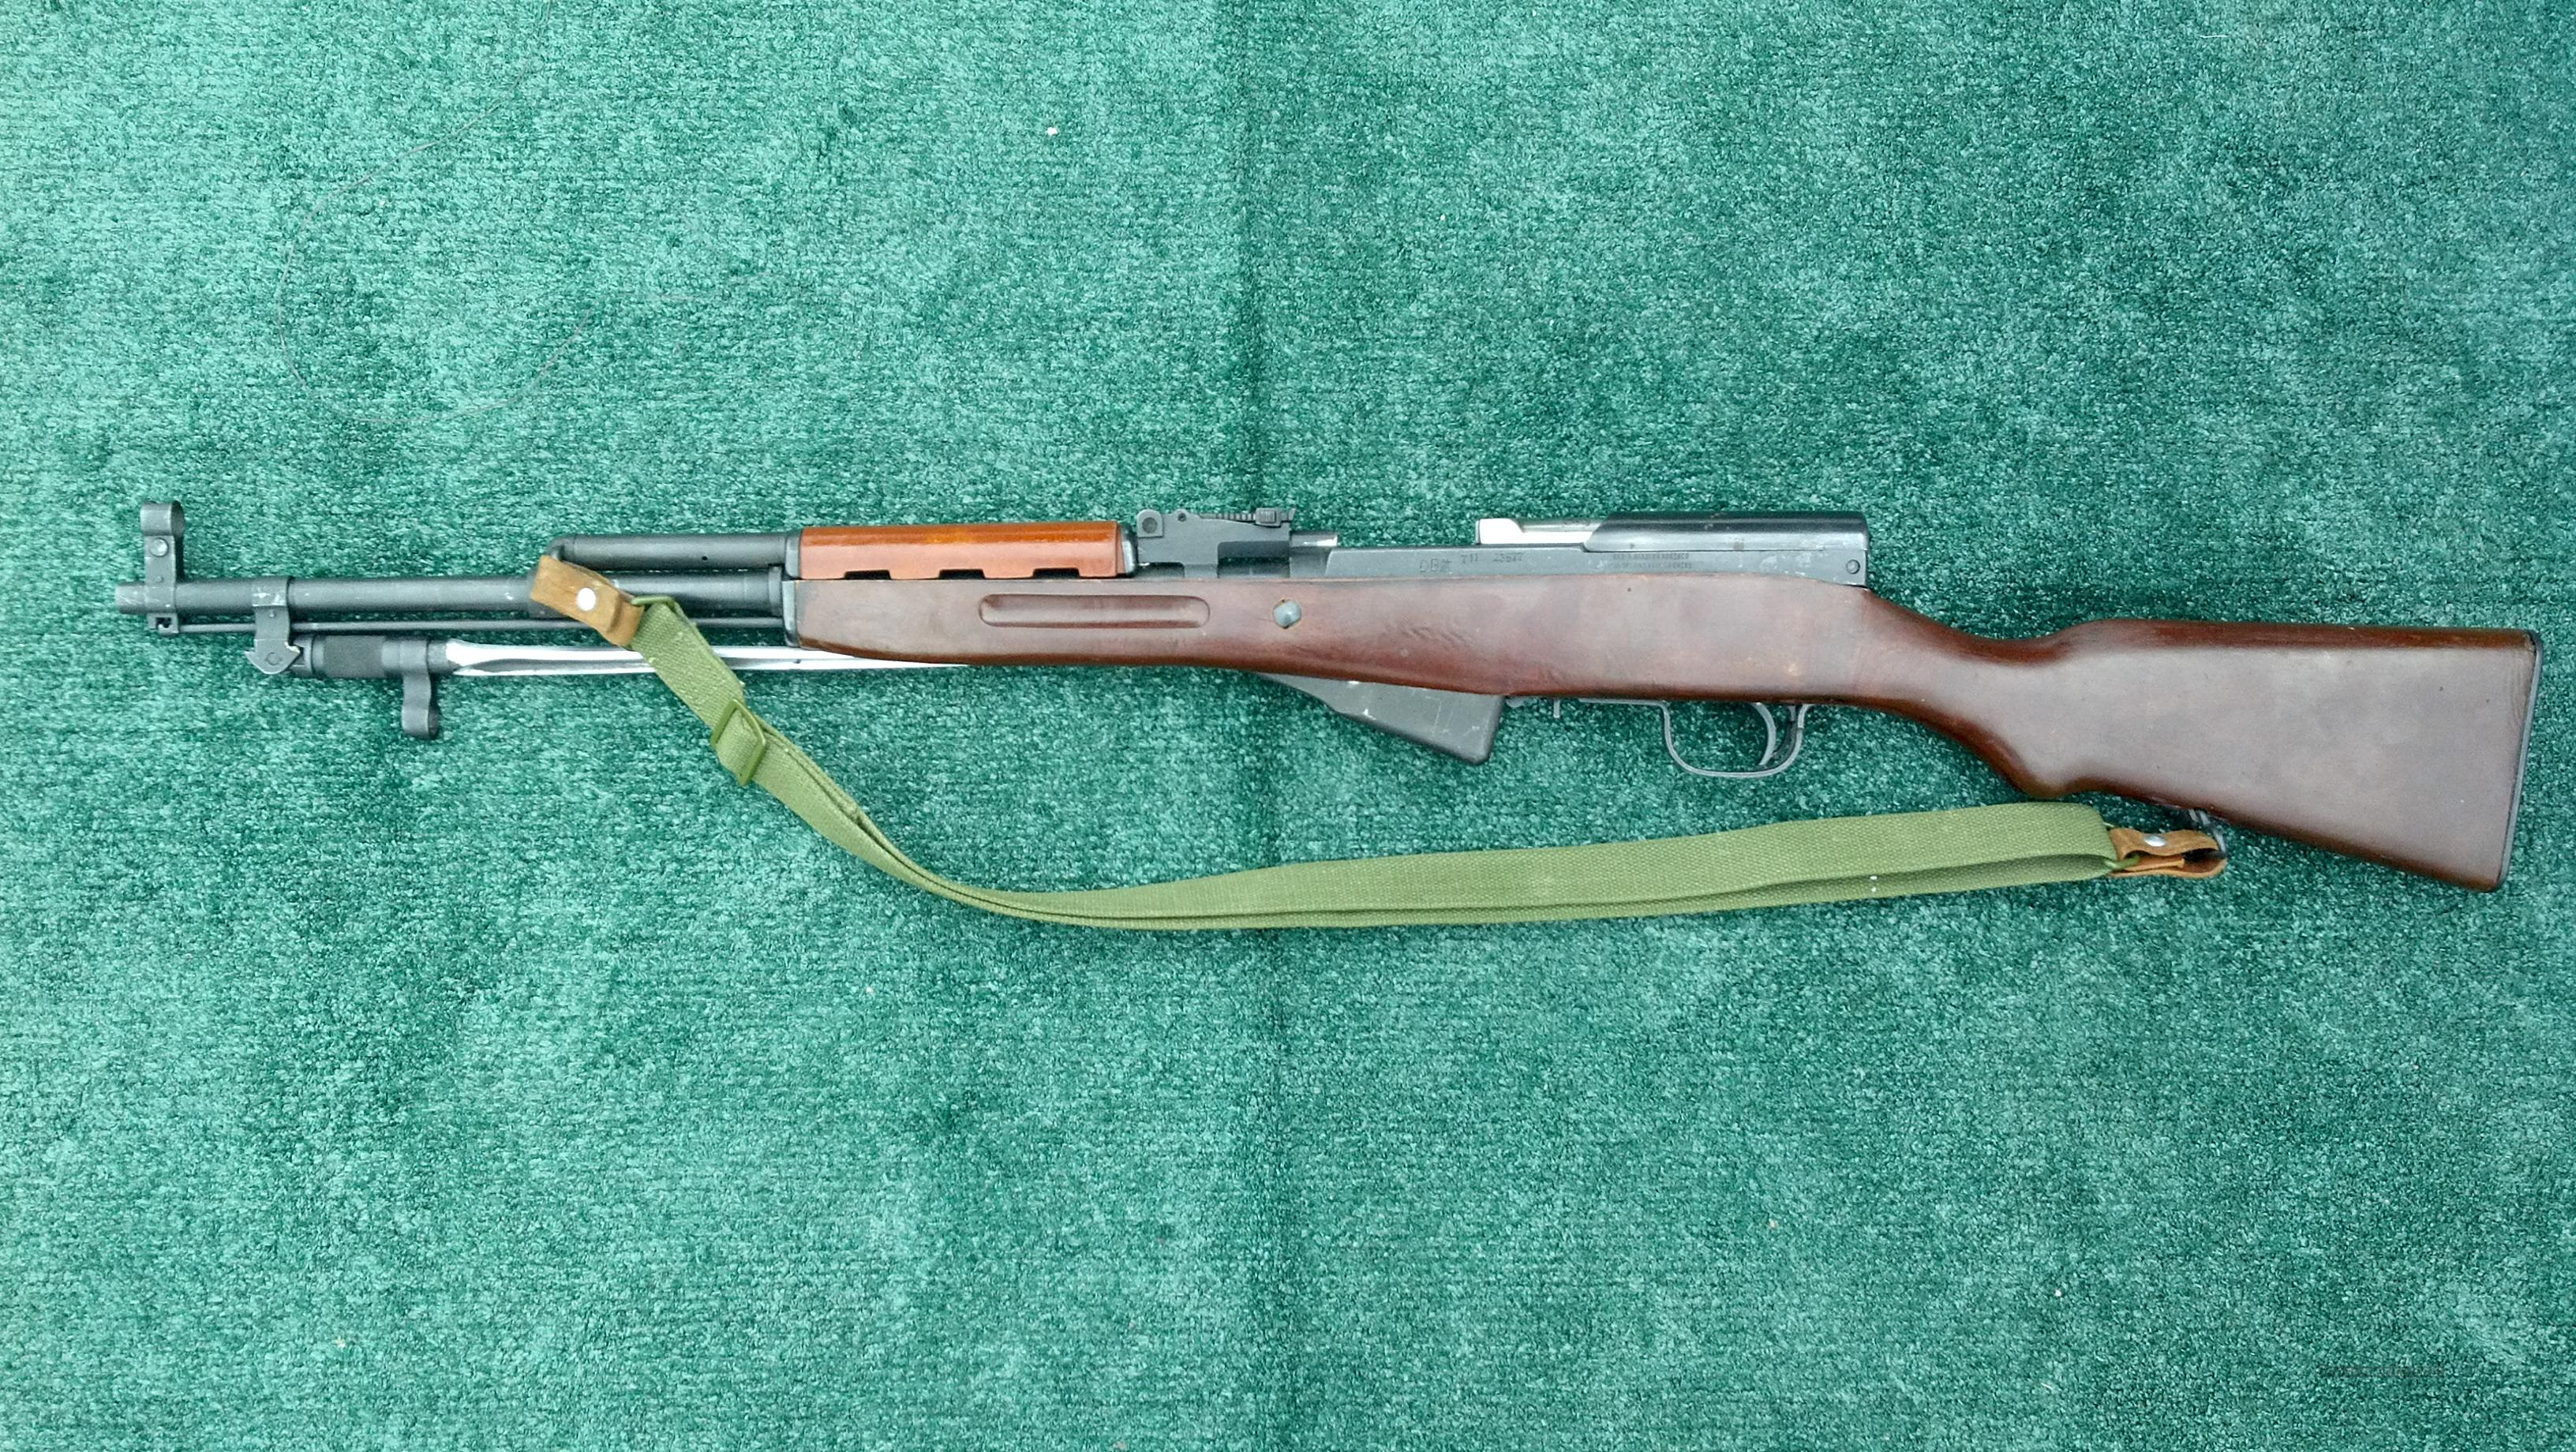 Norinco SKS 7.62x39mm rifle  Guns > Rifles > Norinco Rifles